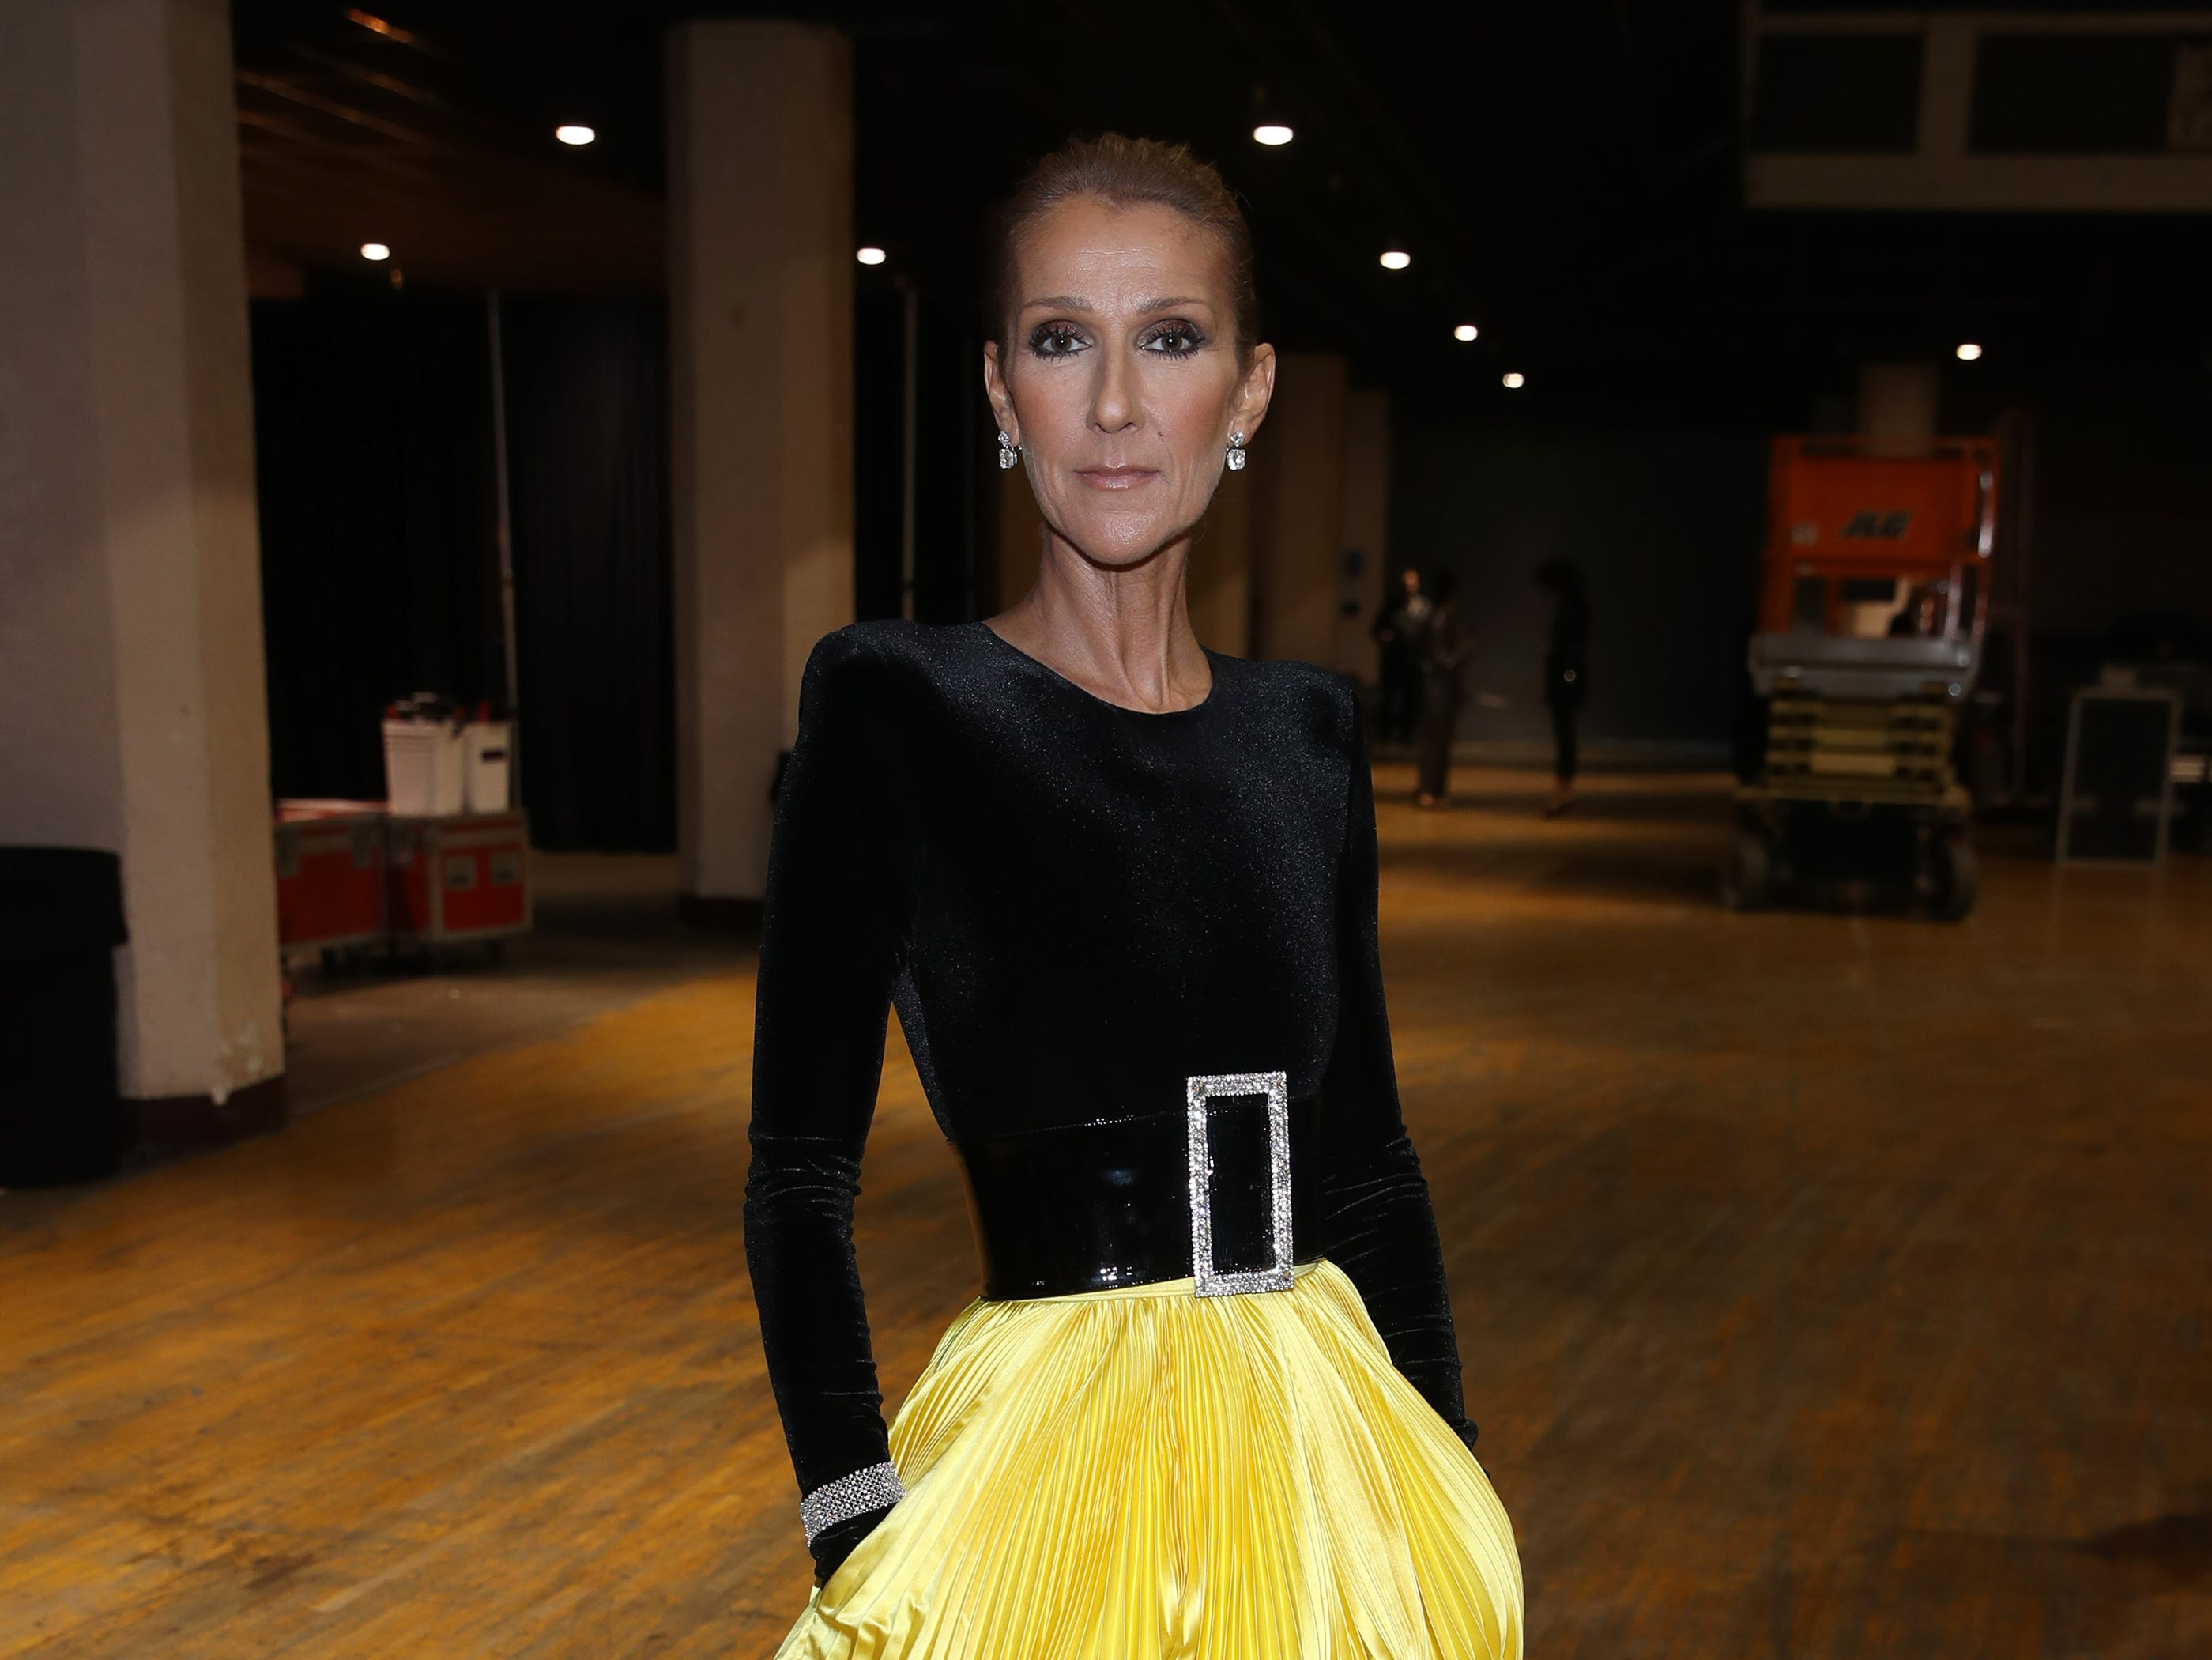 """LOS ANGELES, CA - JANUARY 13:  Celine Dion attends """"Aretha! A Grammy Celebration For the Queen Of Soul"""" at the Shrine Auditorium on Jan. 13, 2019, in Los Angeles, Calif."""